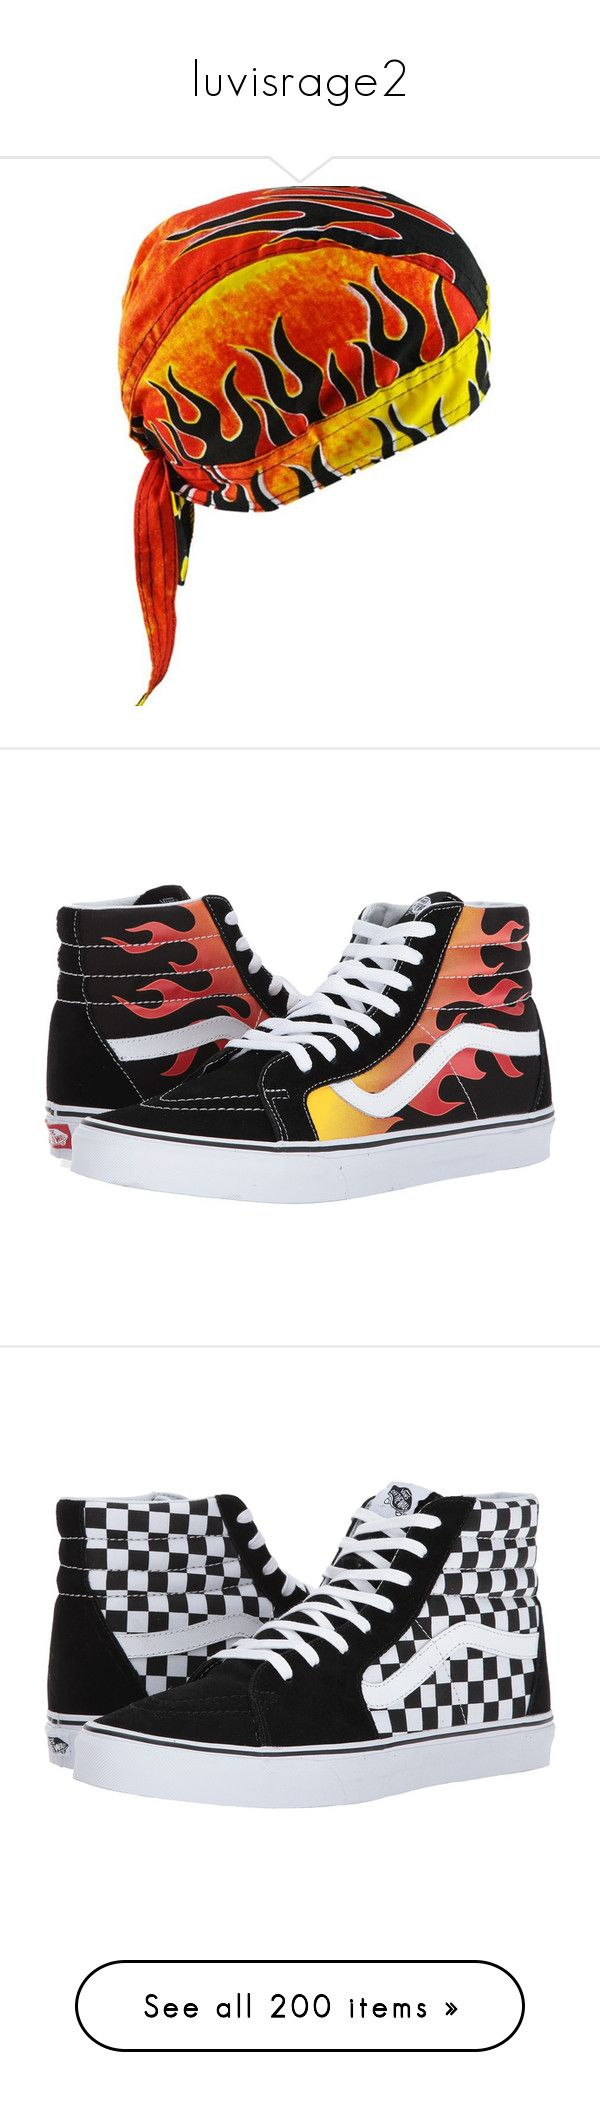 """""""luvisrage2"""" by xxxthebombshellfactoryxxx ❤ liked on Polyvore featuring hats, shoes, sneakers, white high top sneakers, white hi tops, high-top sneakers, white sneakers, leather sneakers, vans and vans high tops"""